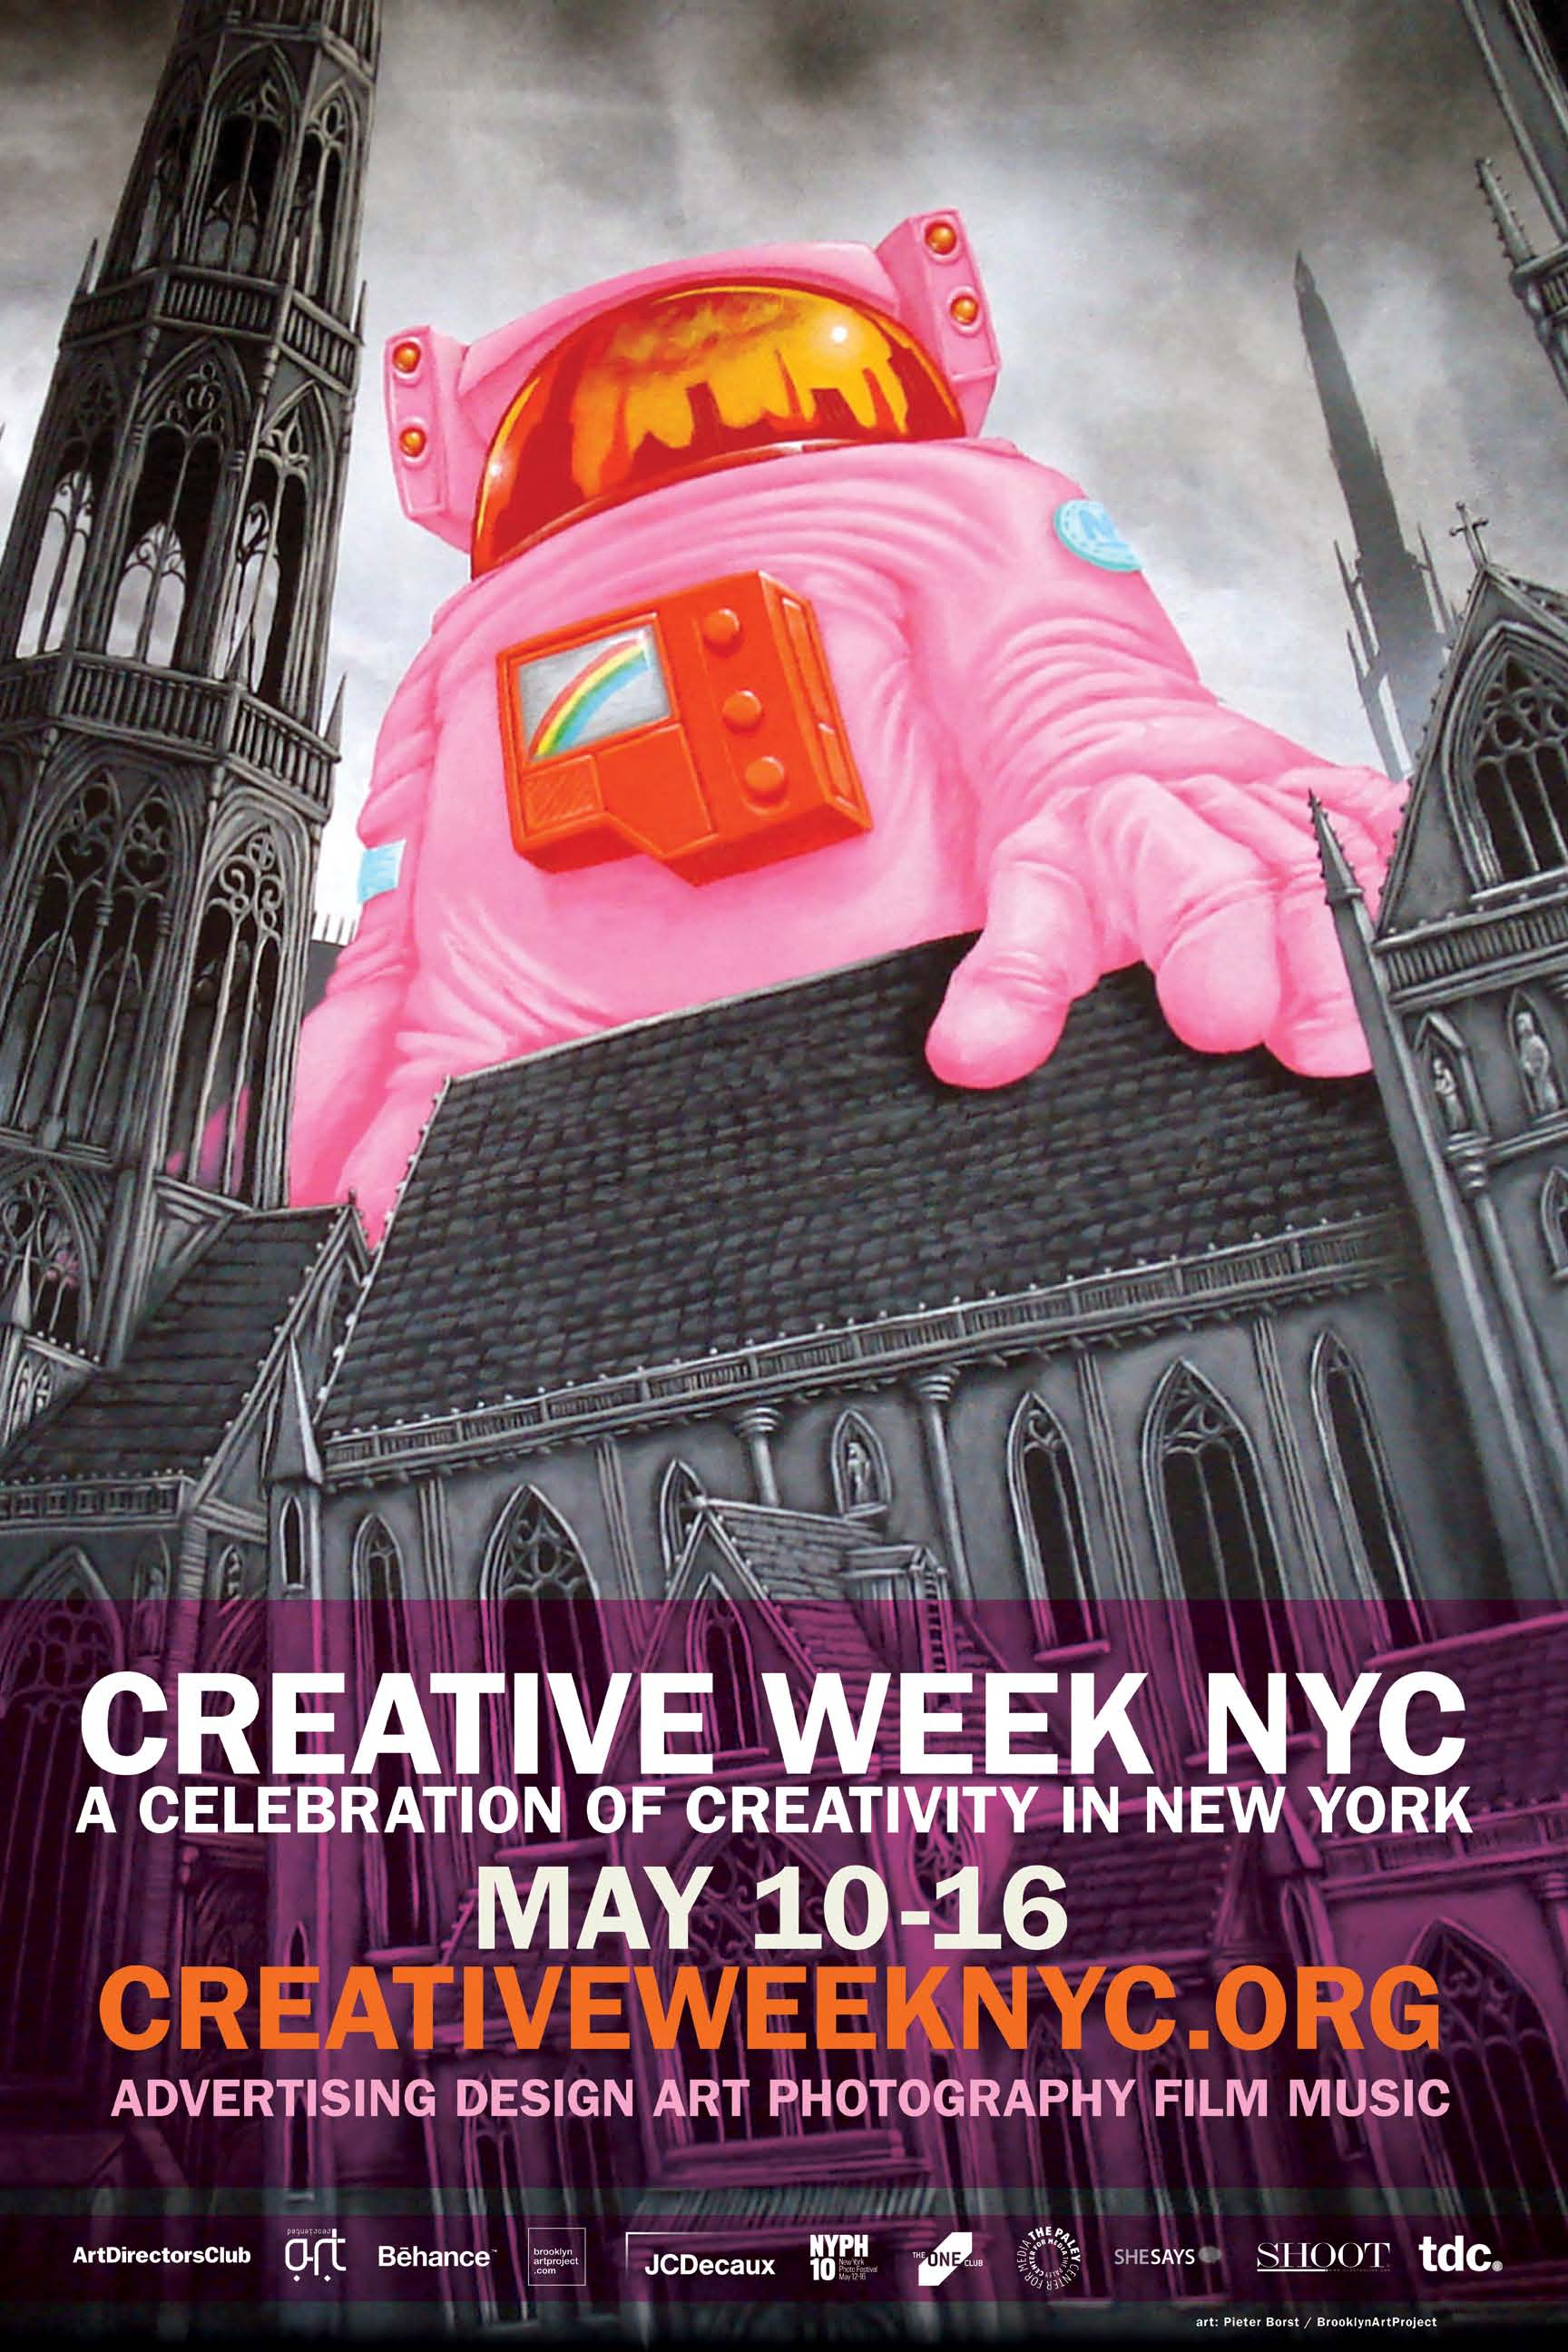 Creative Week NYC